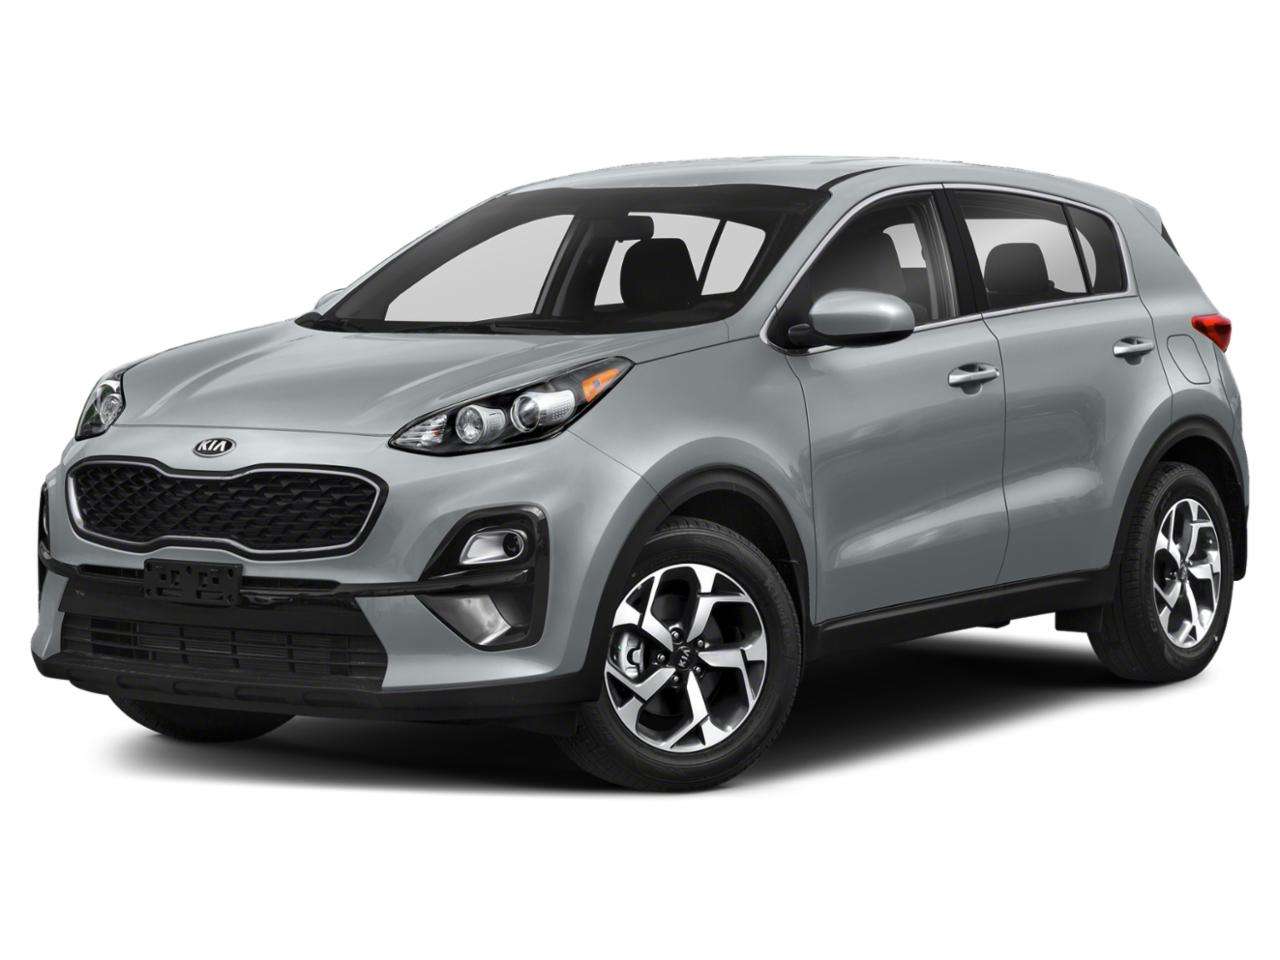 2020 Kia Sportage Vehicle Photo in Peoria, IL 61615